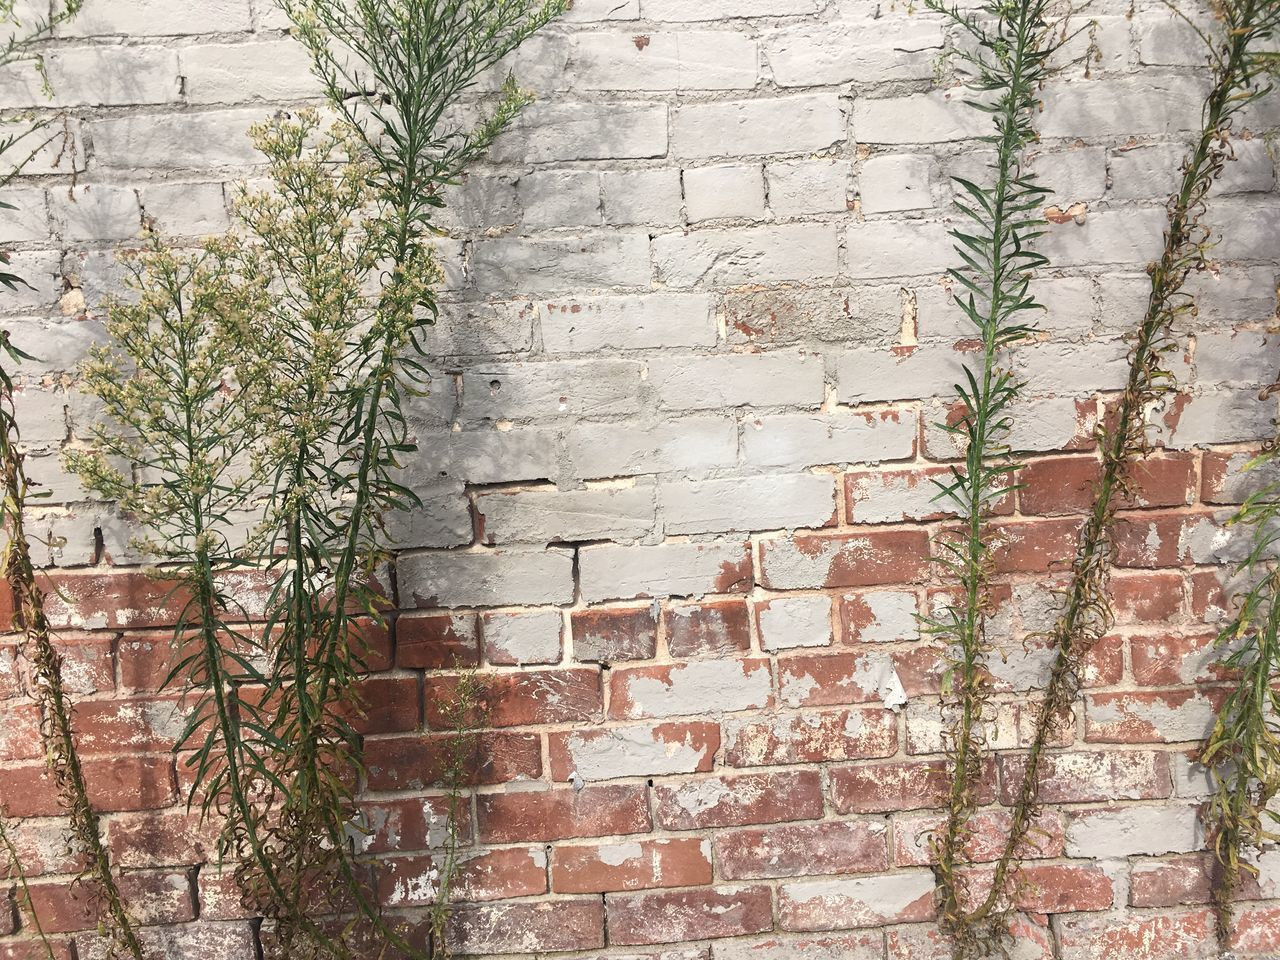 architecture, brick, brick wall, plant, built structure, wall, wall - building feature, building exterior, no people, day, building, outdoors, nature, growth, window, tree, low angle view, plant part, full frame, leaf